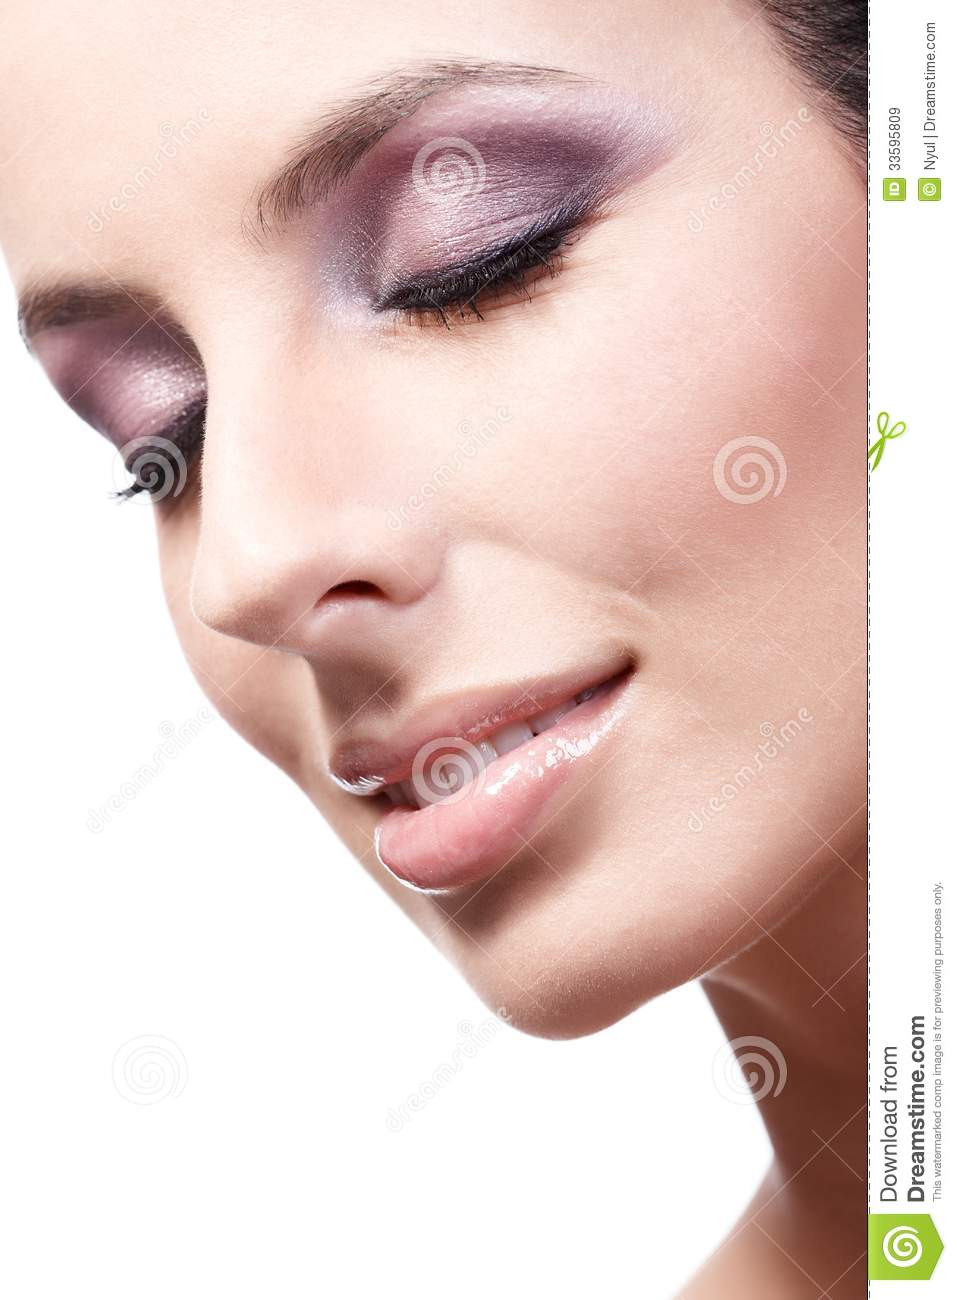 Closeup Beauty Portrait Of Young Woman Eyes Closed Stock ...